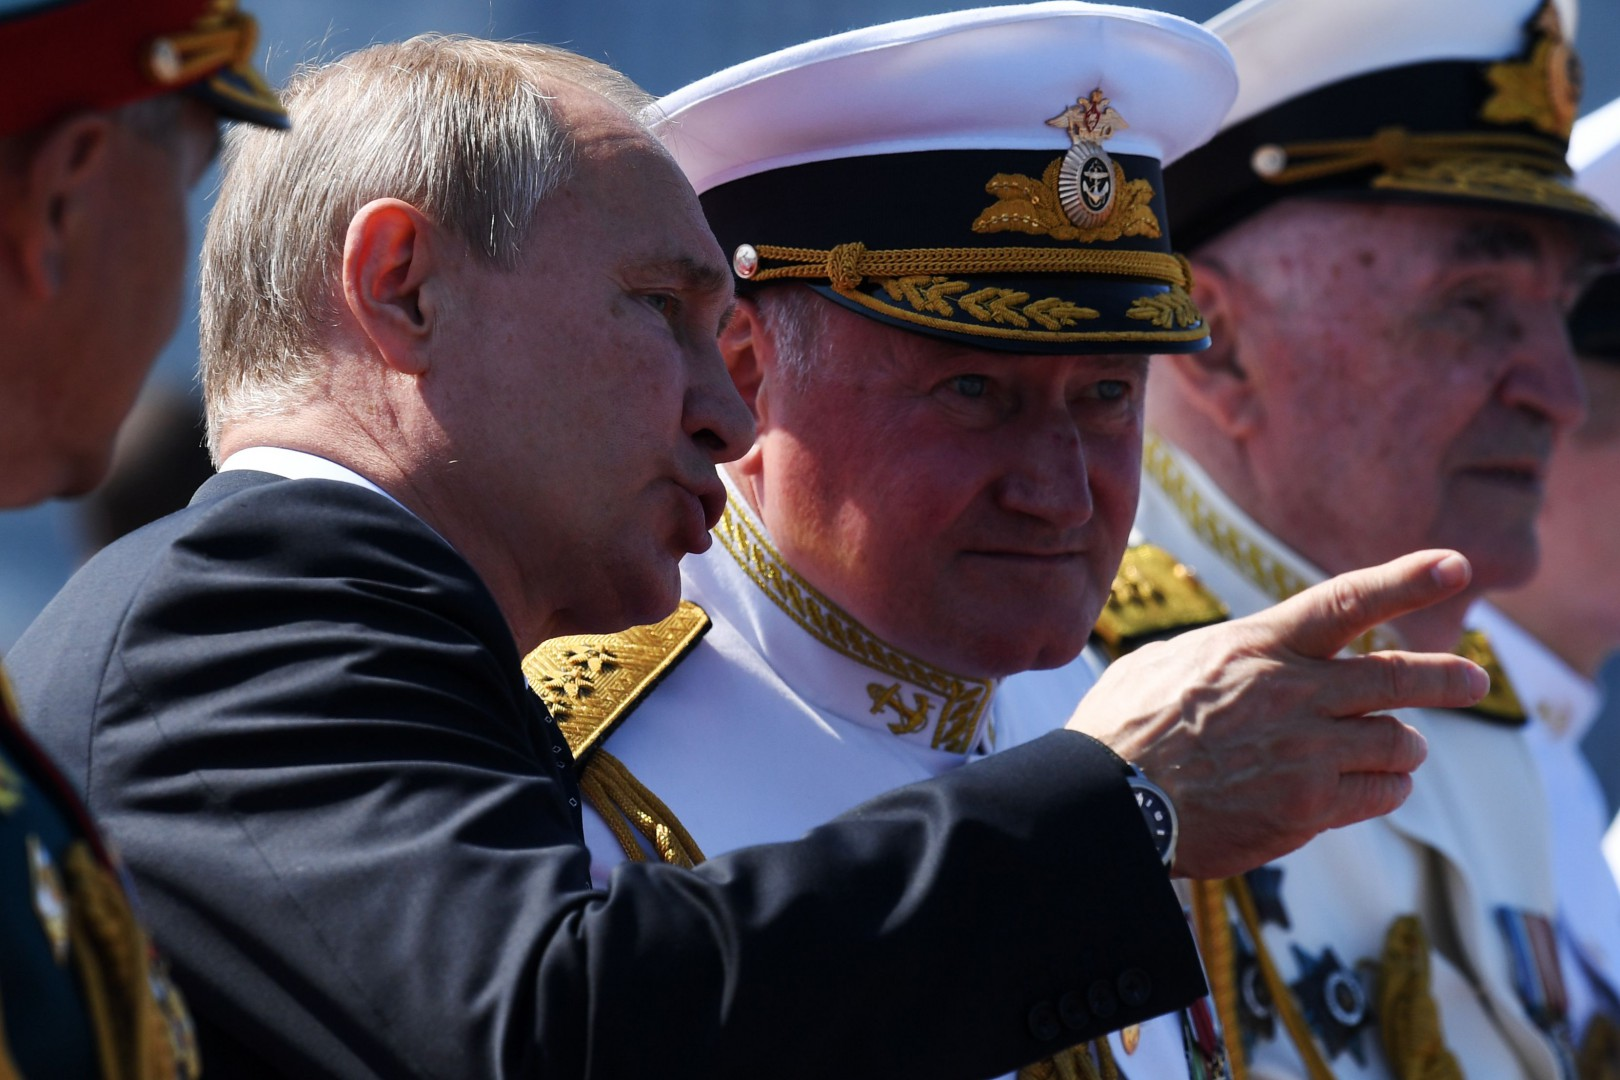 Russian President Vladimir Putin and Commander-in-Chief of the Russian Navy Admiral Vladimir Korolev watch the Navy Day parade in Saint Petersburg on July 29, 2018. / AFP PHOTO / Kirill KUDRYAVTSEV